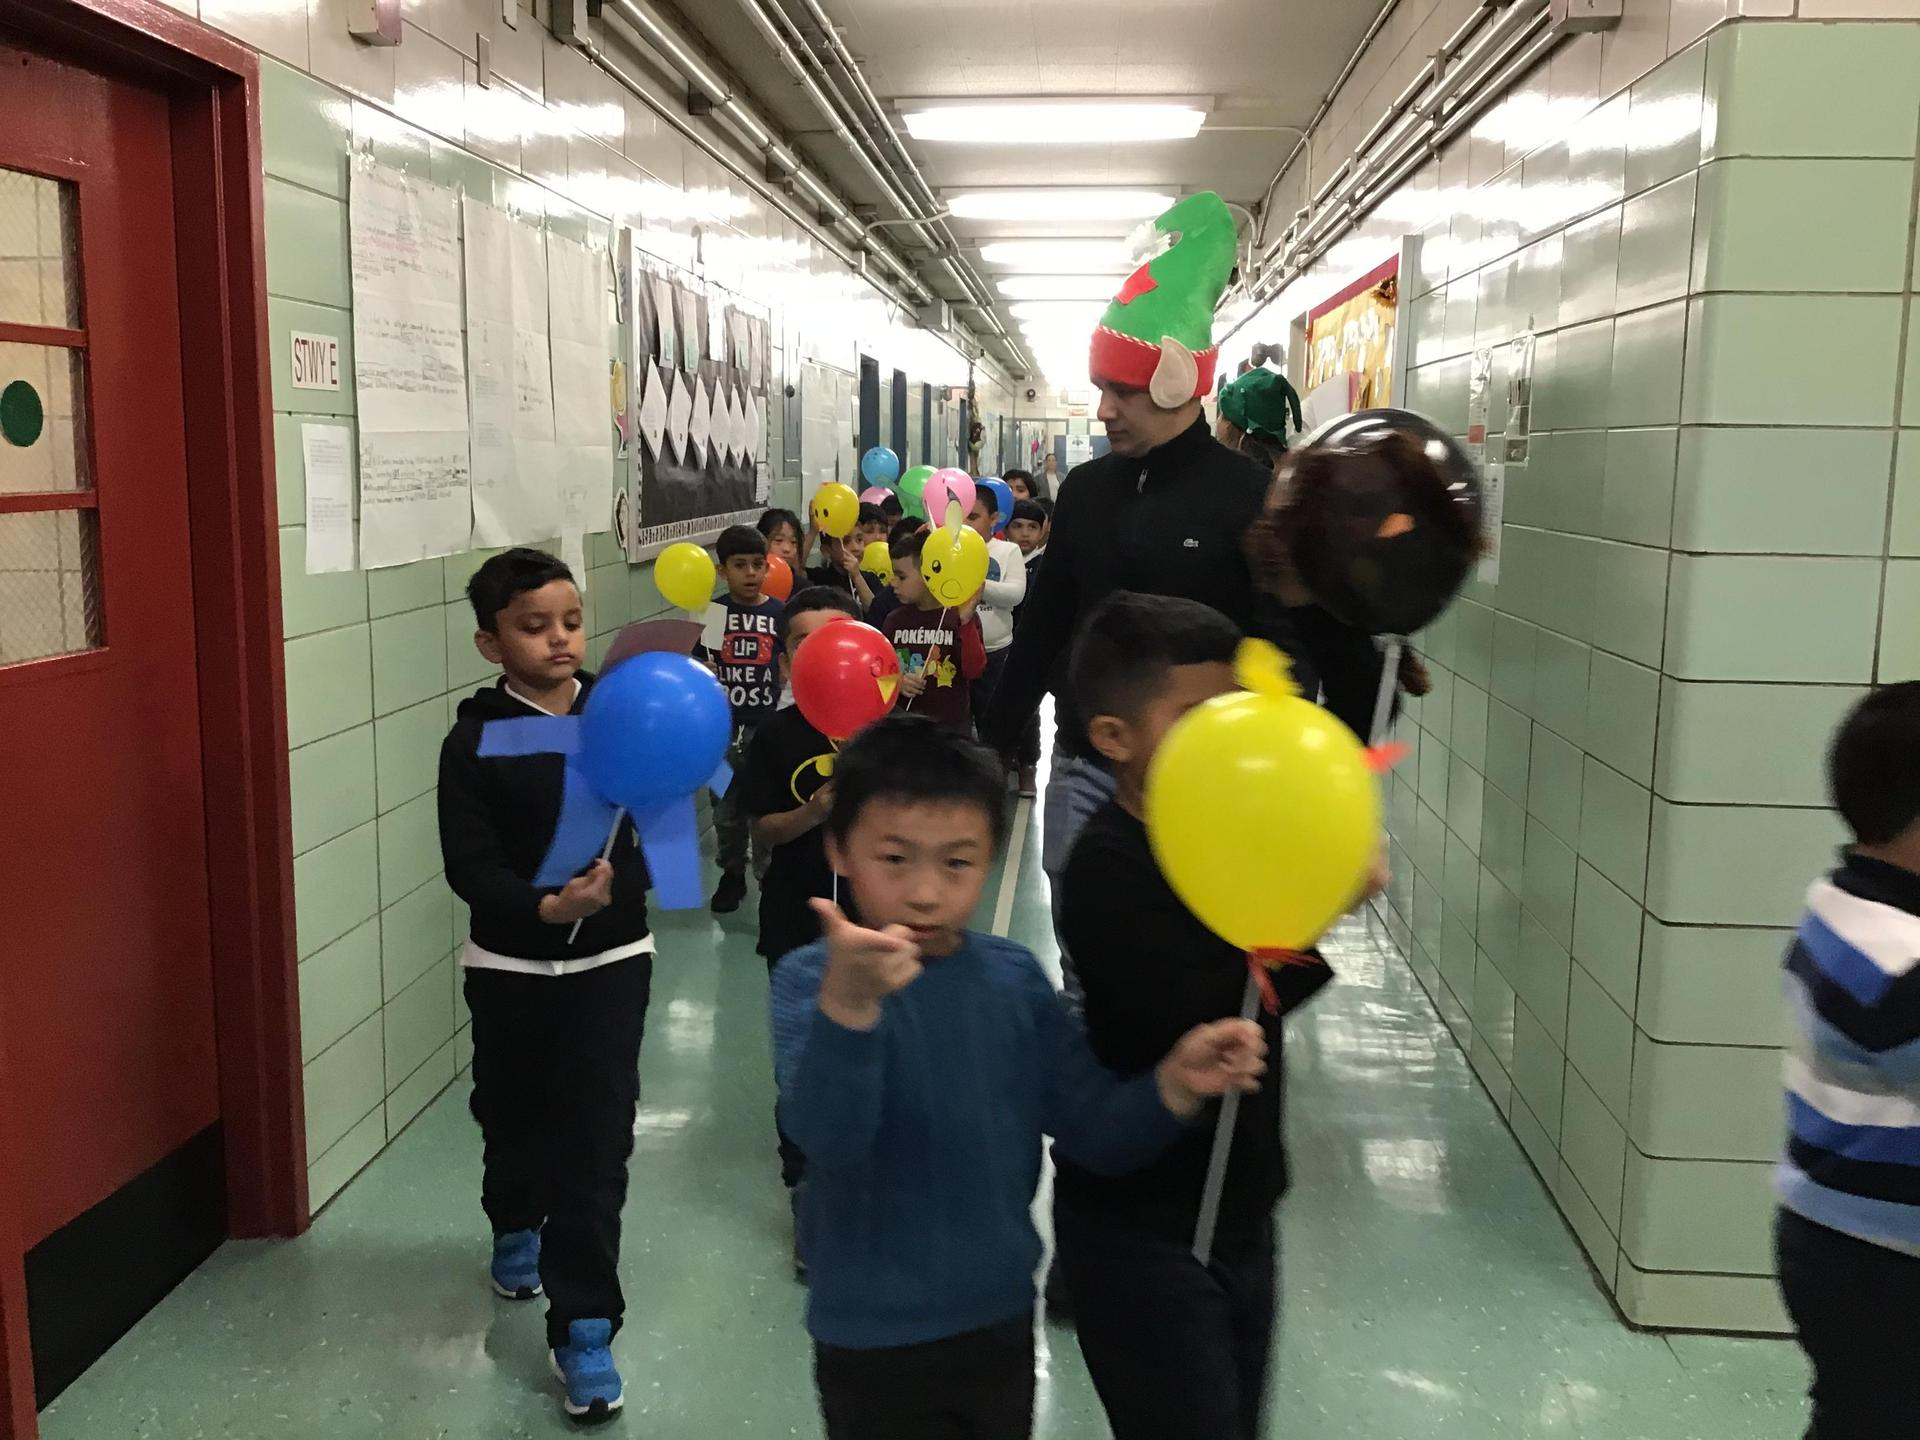 students and teachers parading in school hallway with balloons and signs